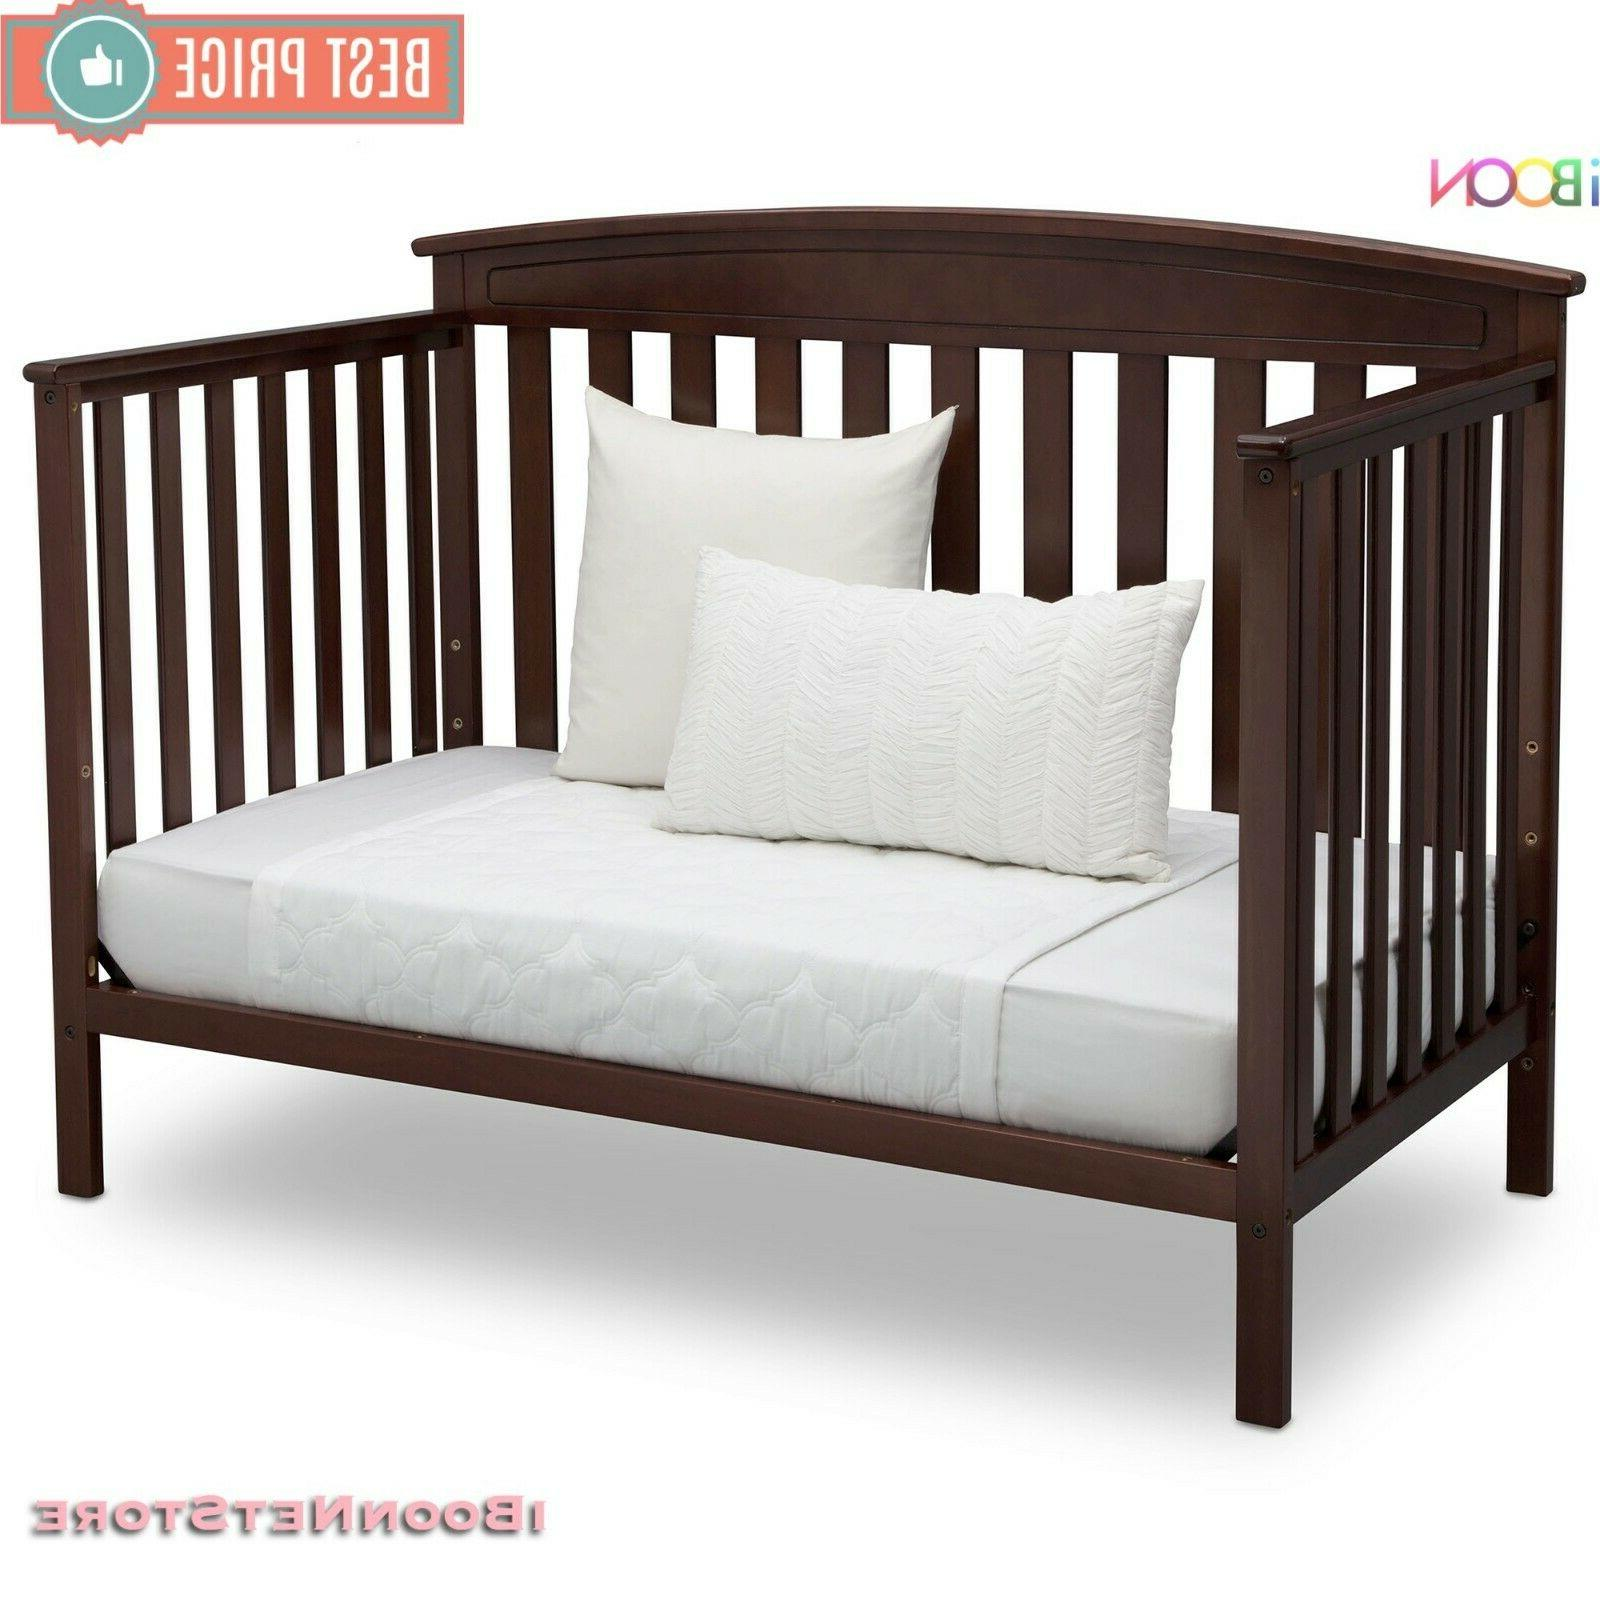 Adjustable Crib 4 in 1 Wood BED Colors